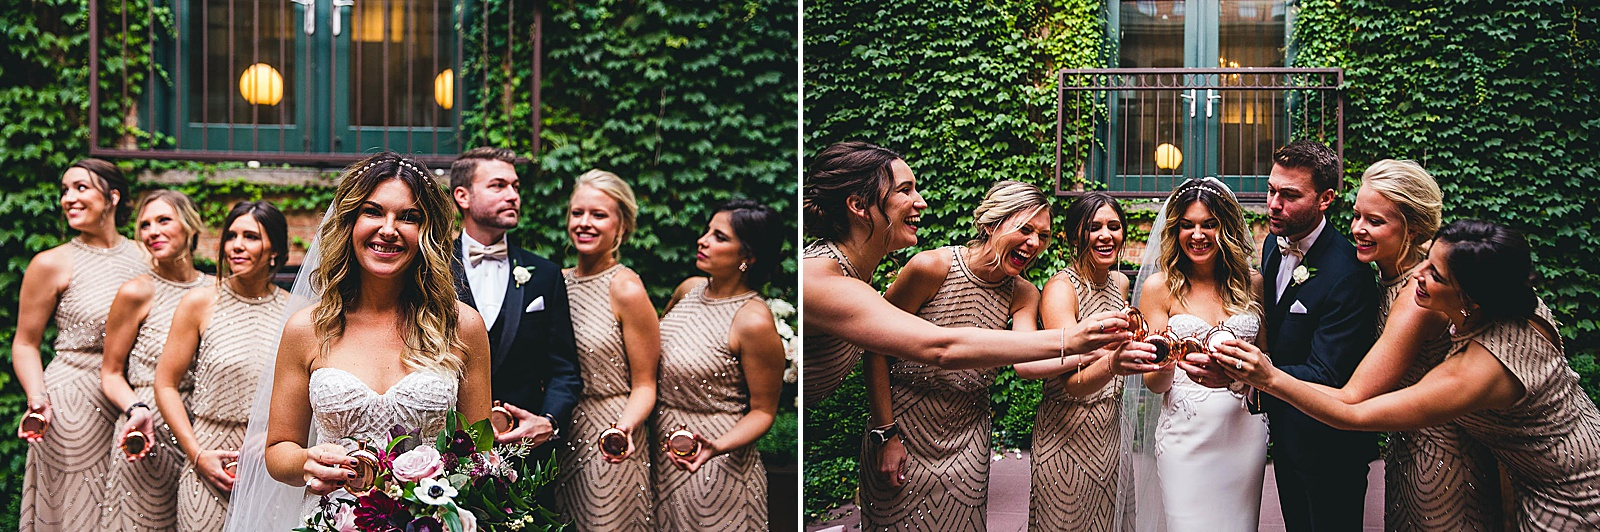 40 fun bridal party photos - Ivy Room Chicago Wedding Photos // Bethany + Anthony